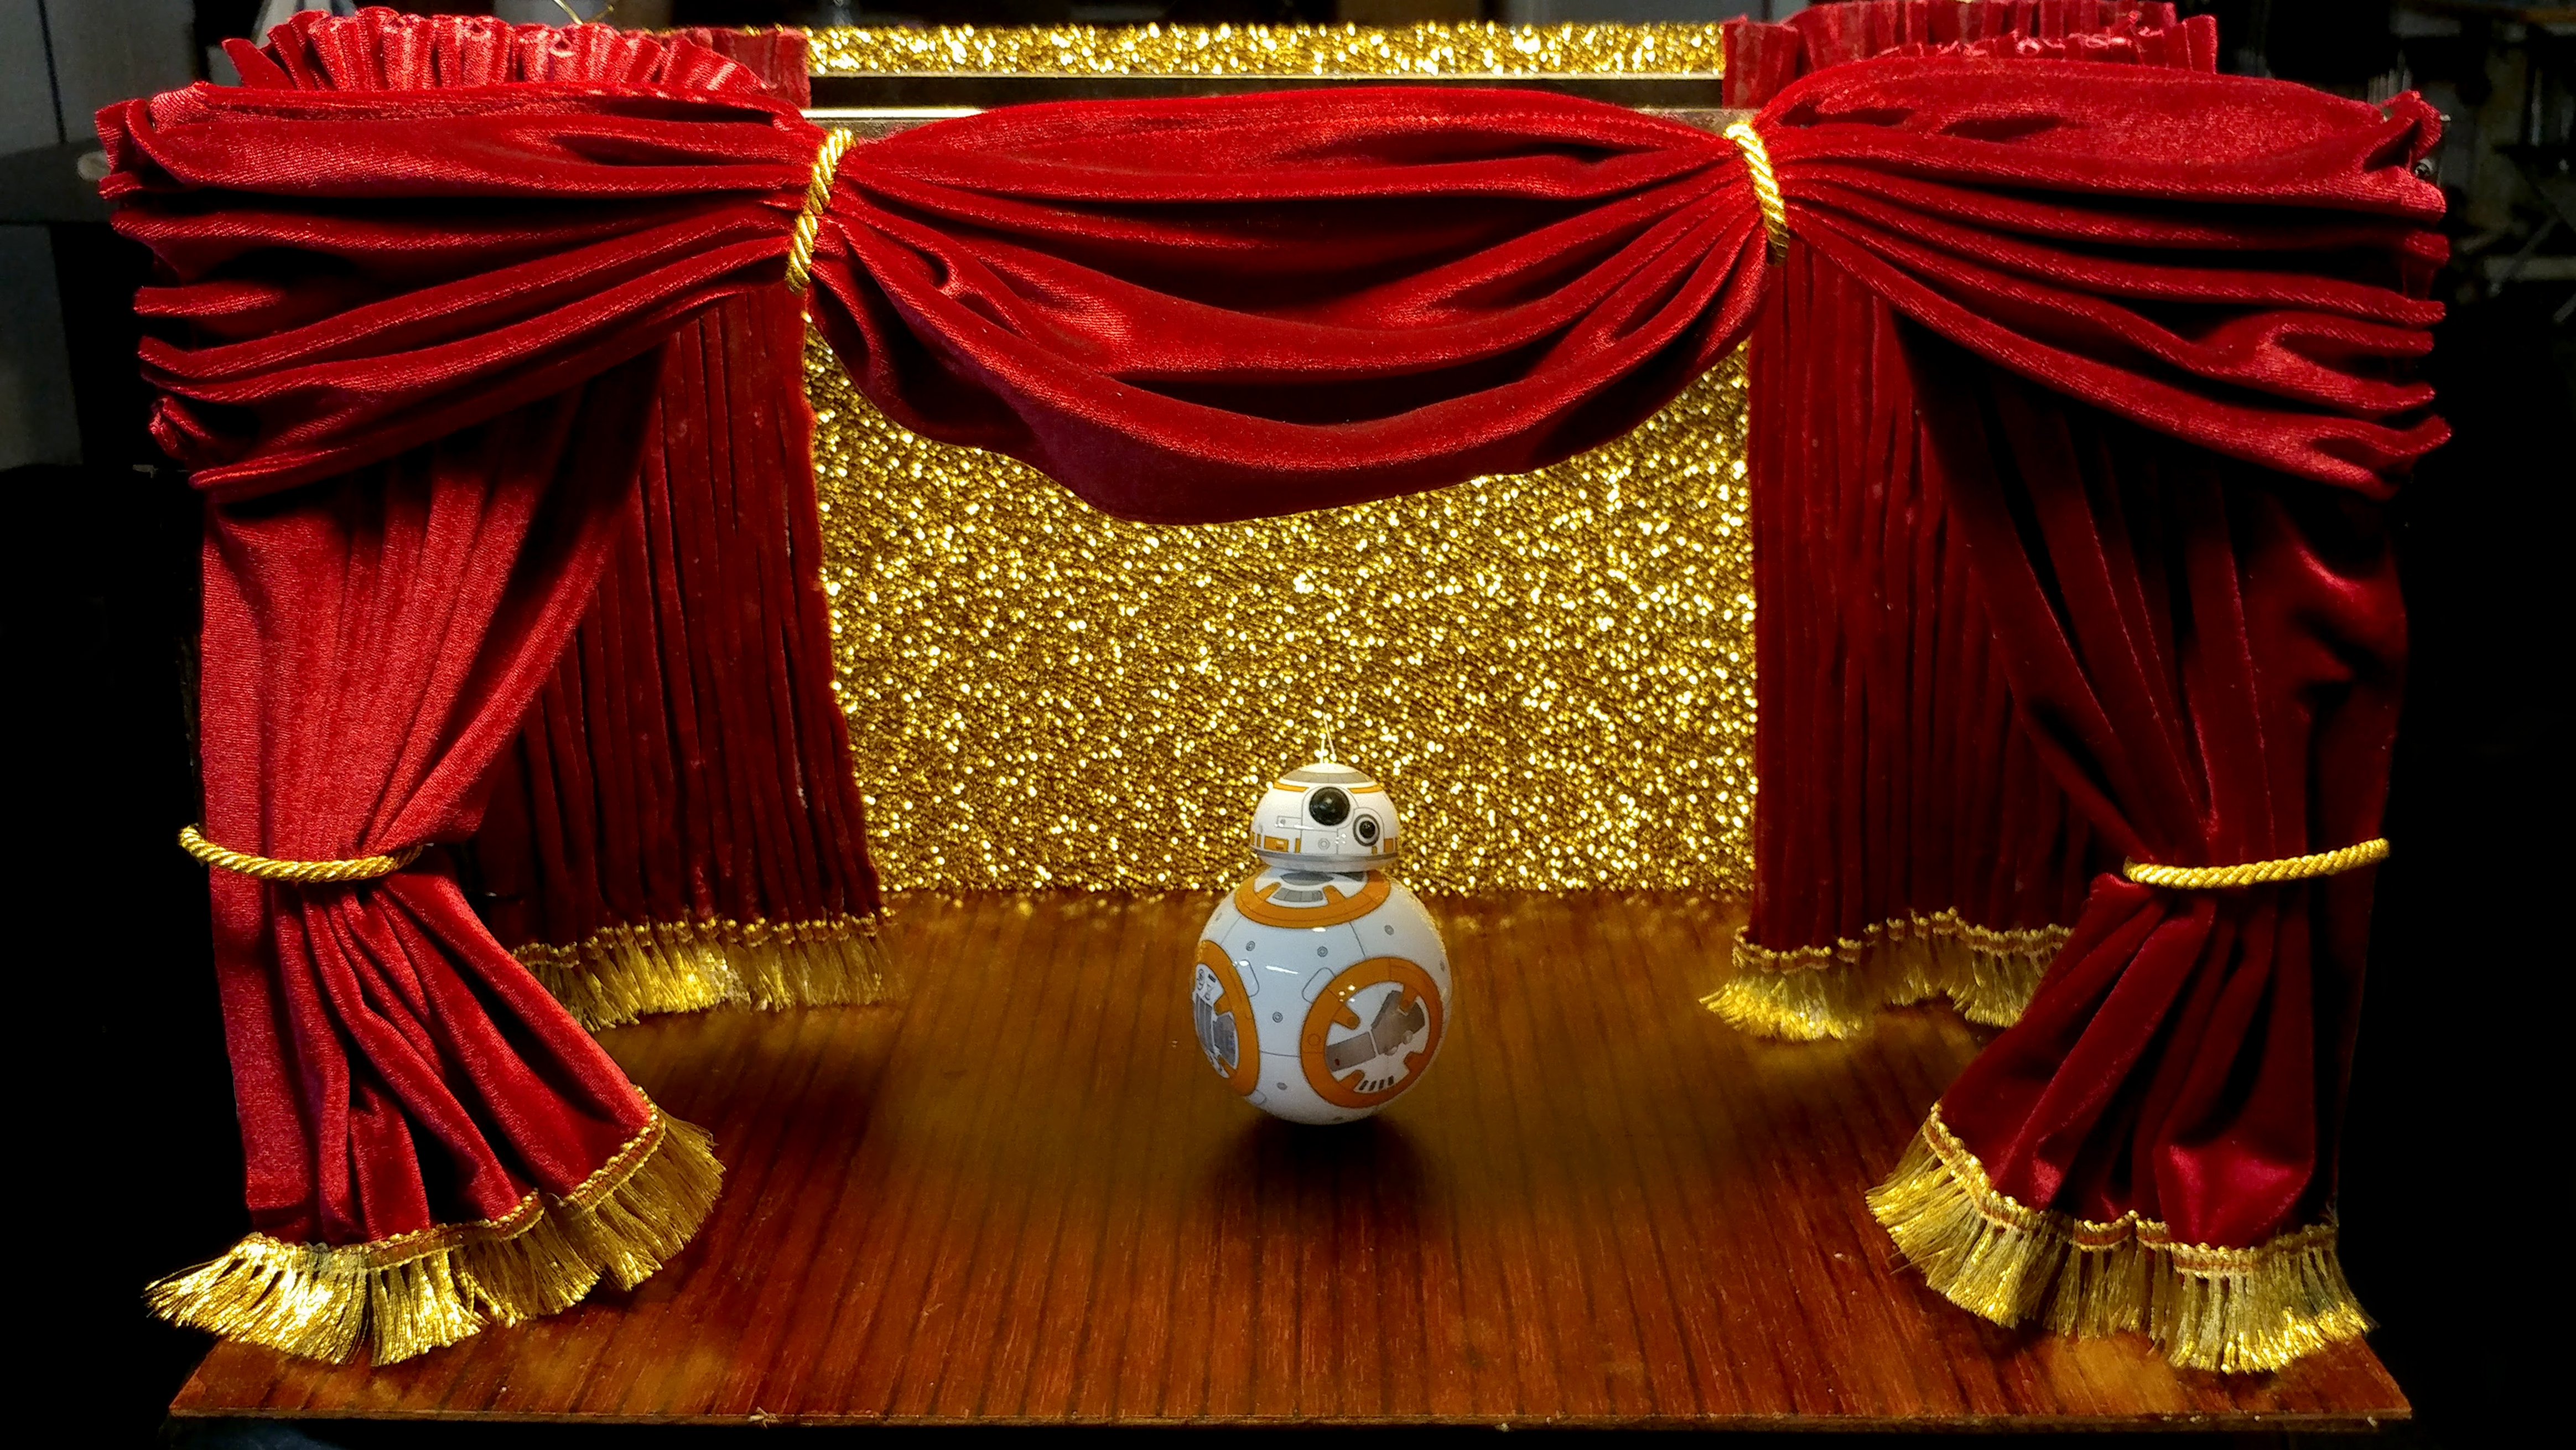 BB-8 Takes the Stage